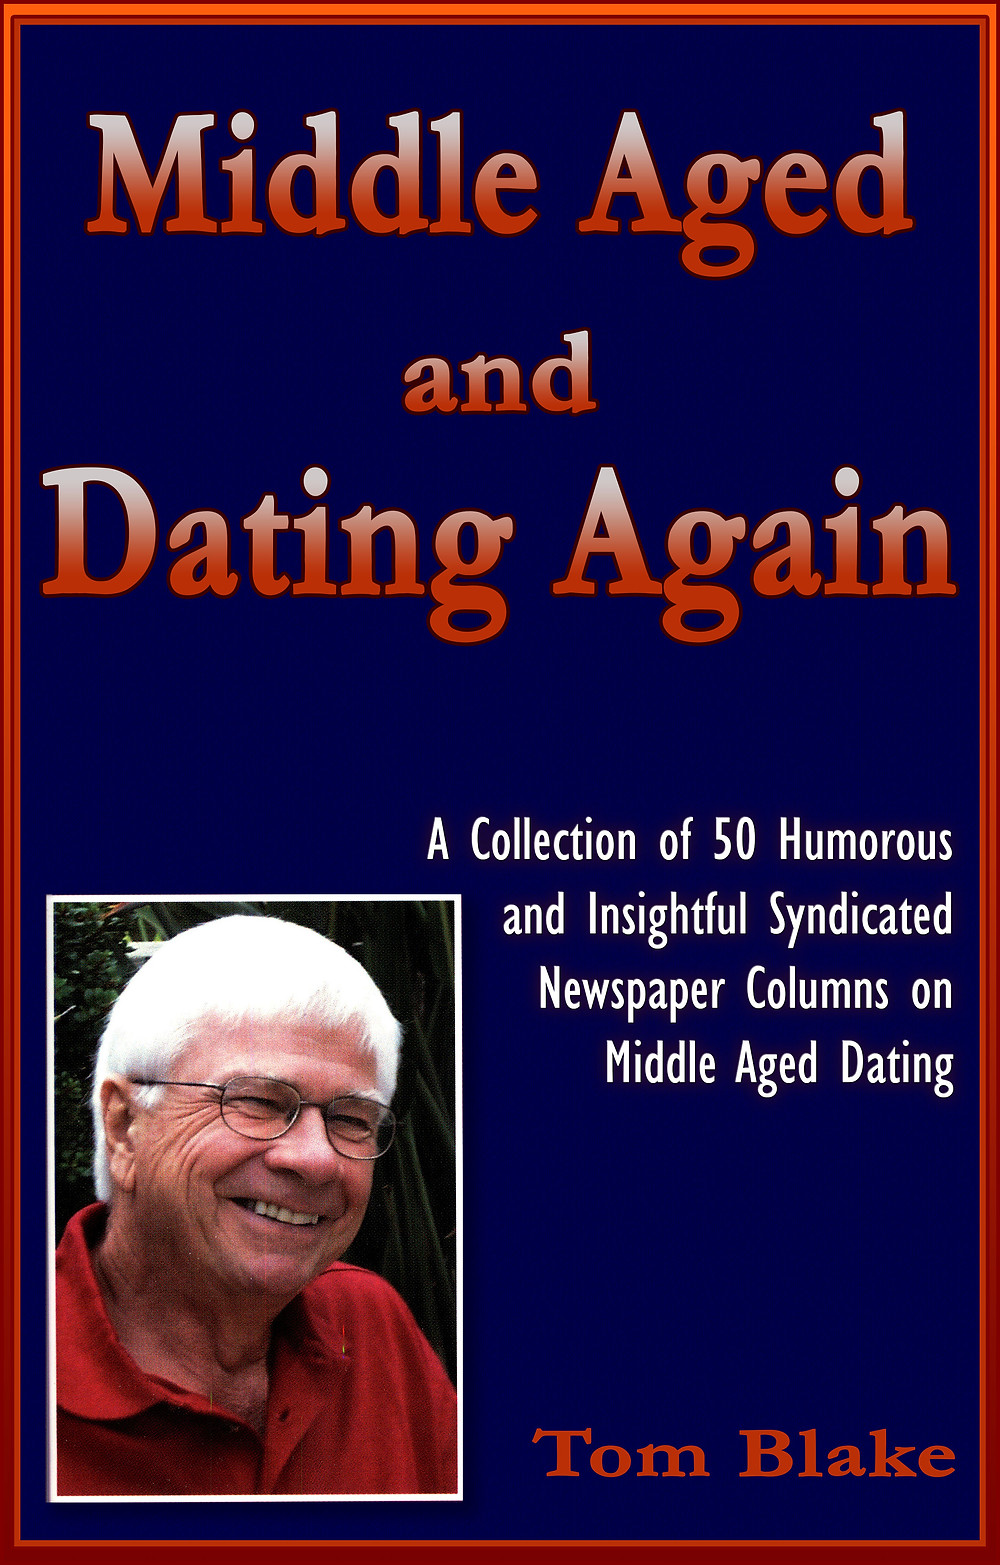 Middle Aged and Dating Again Tom Blake